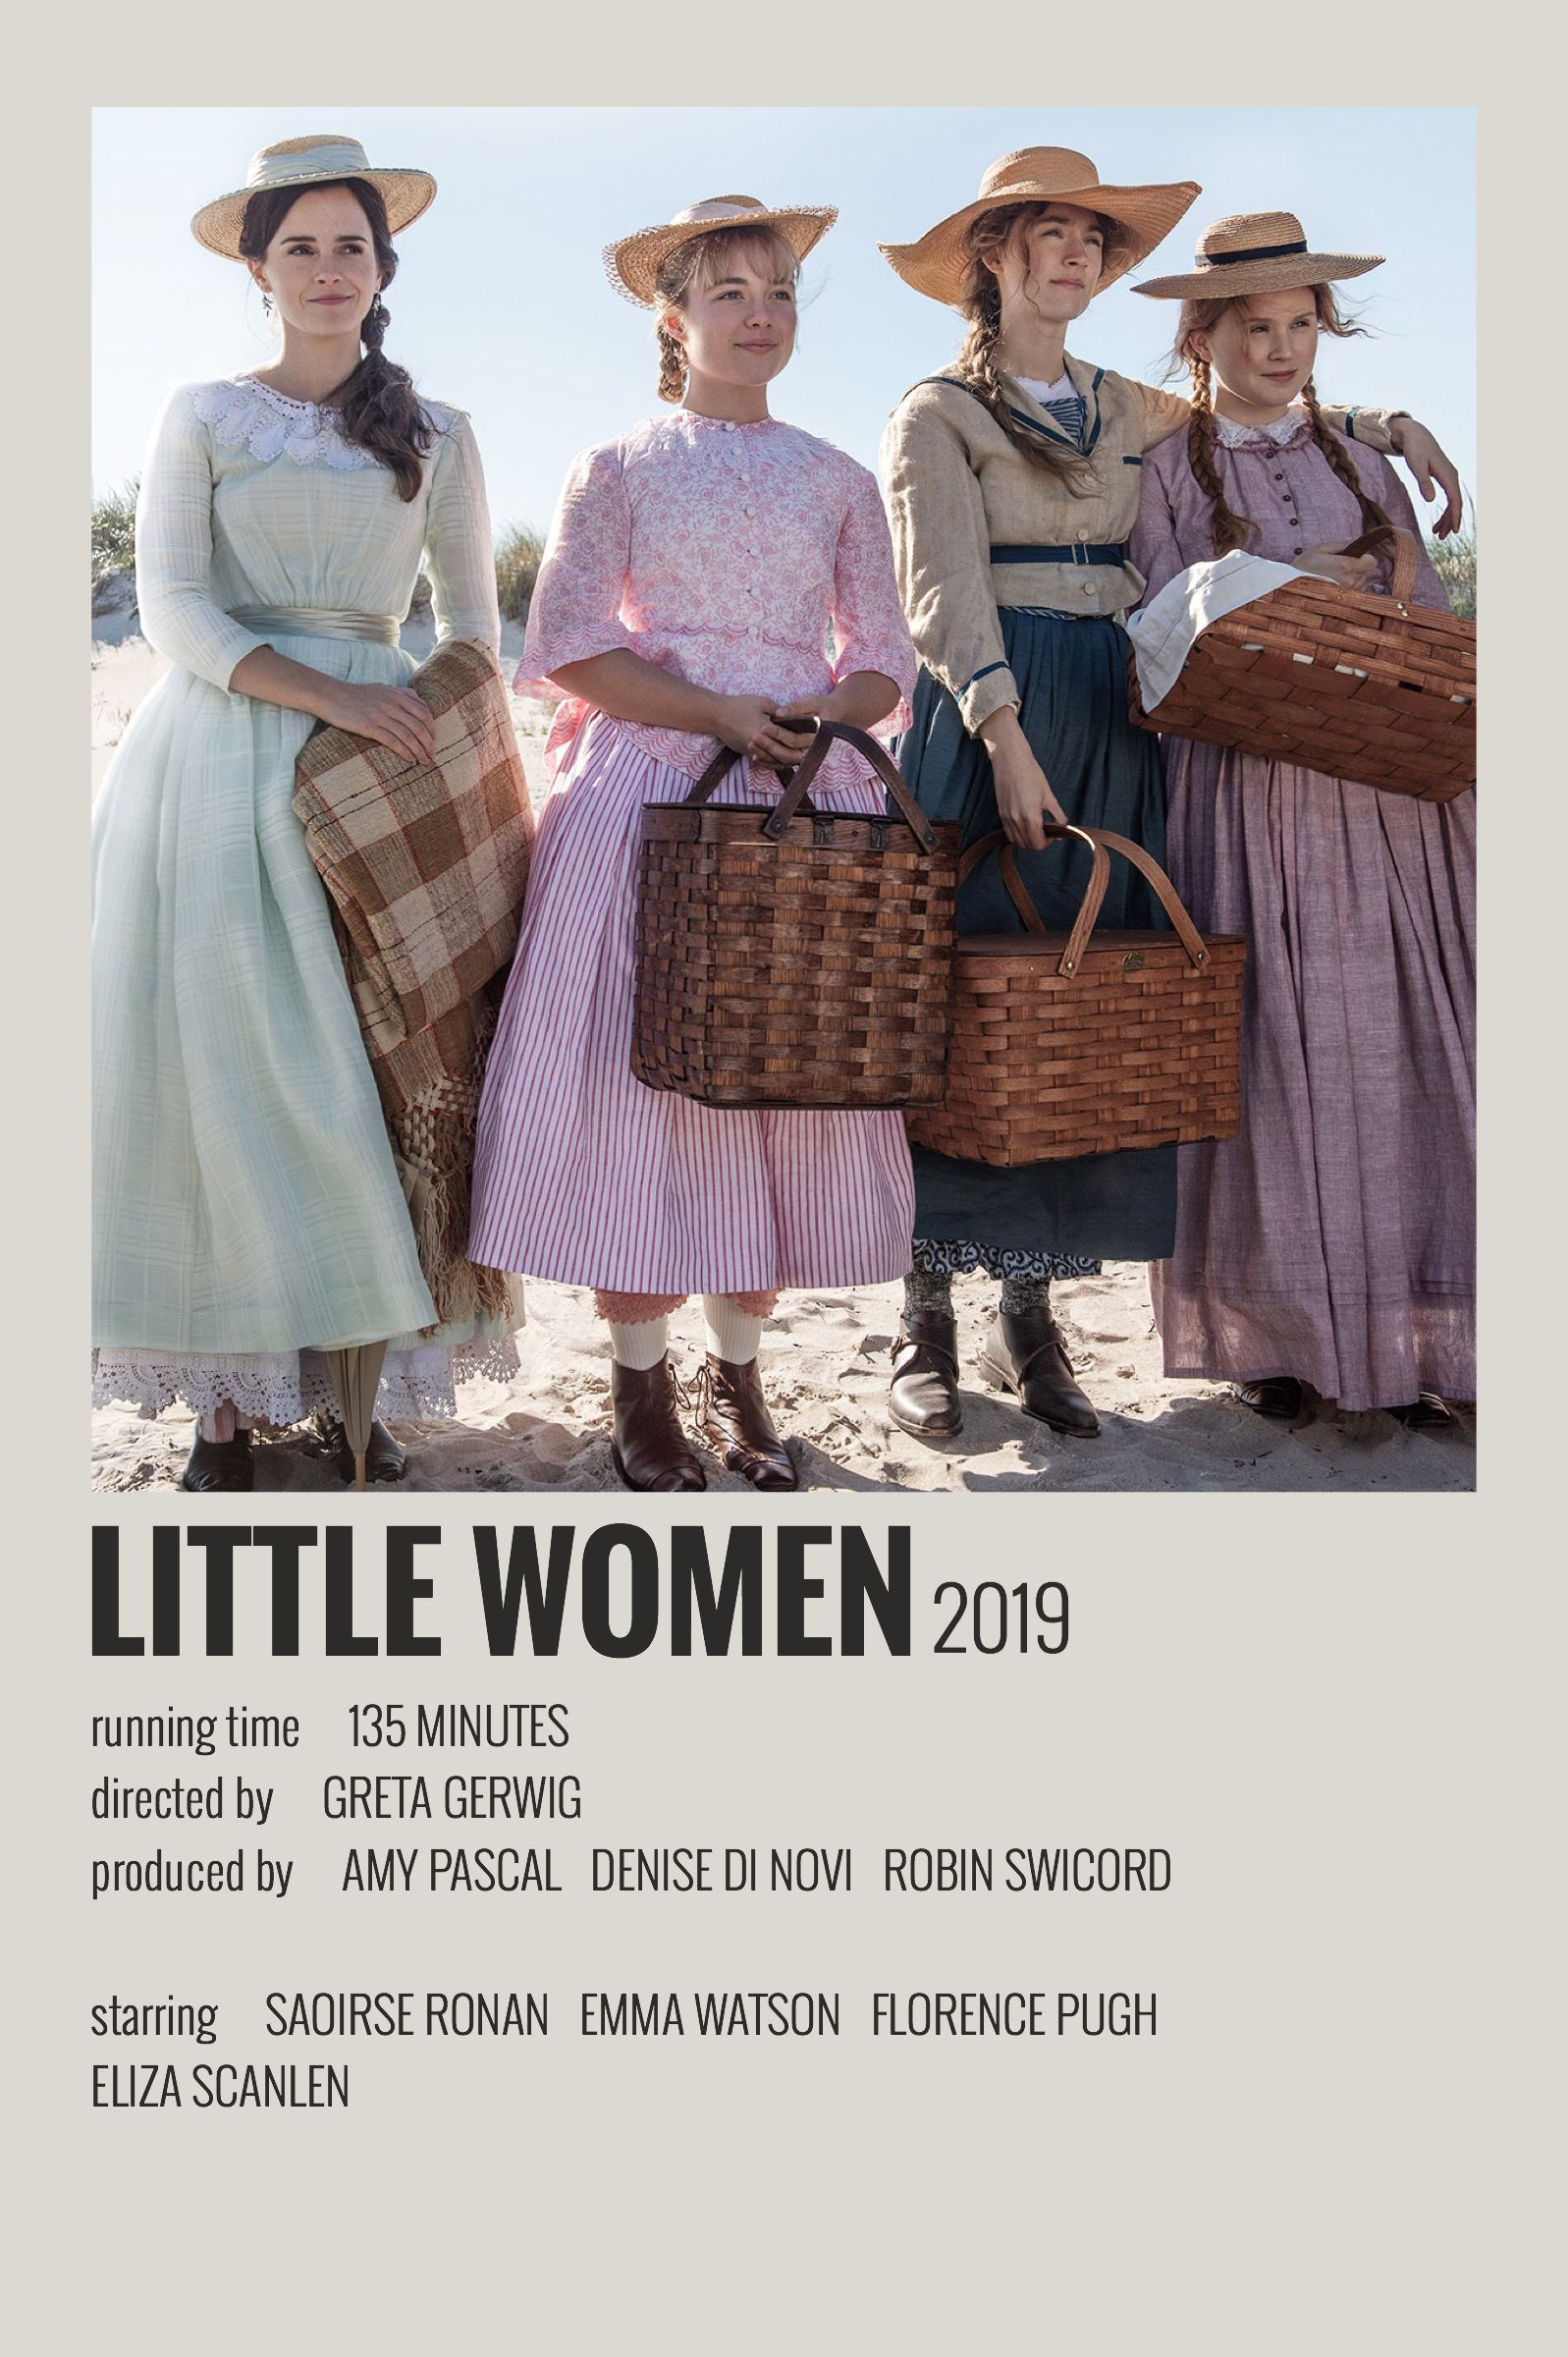 Alternative Minimalist Movie/Show Polaroid Poster - Little Women